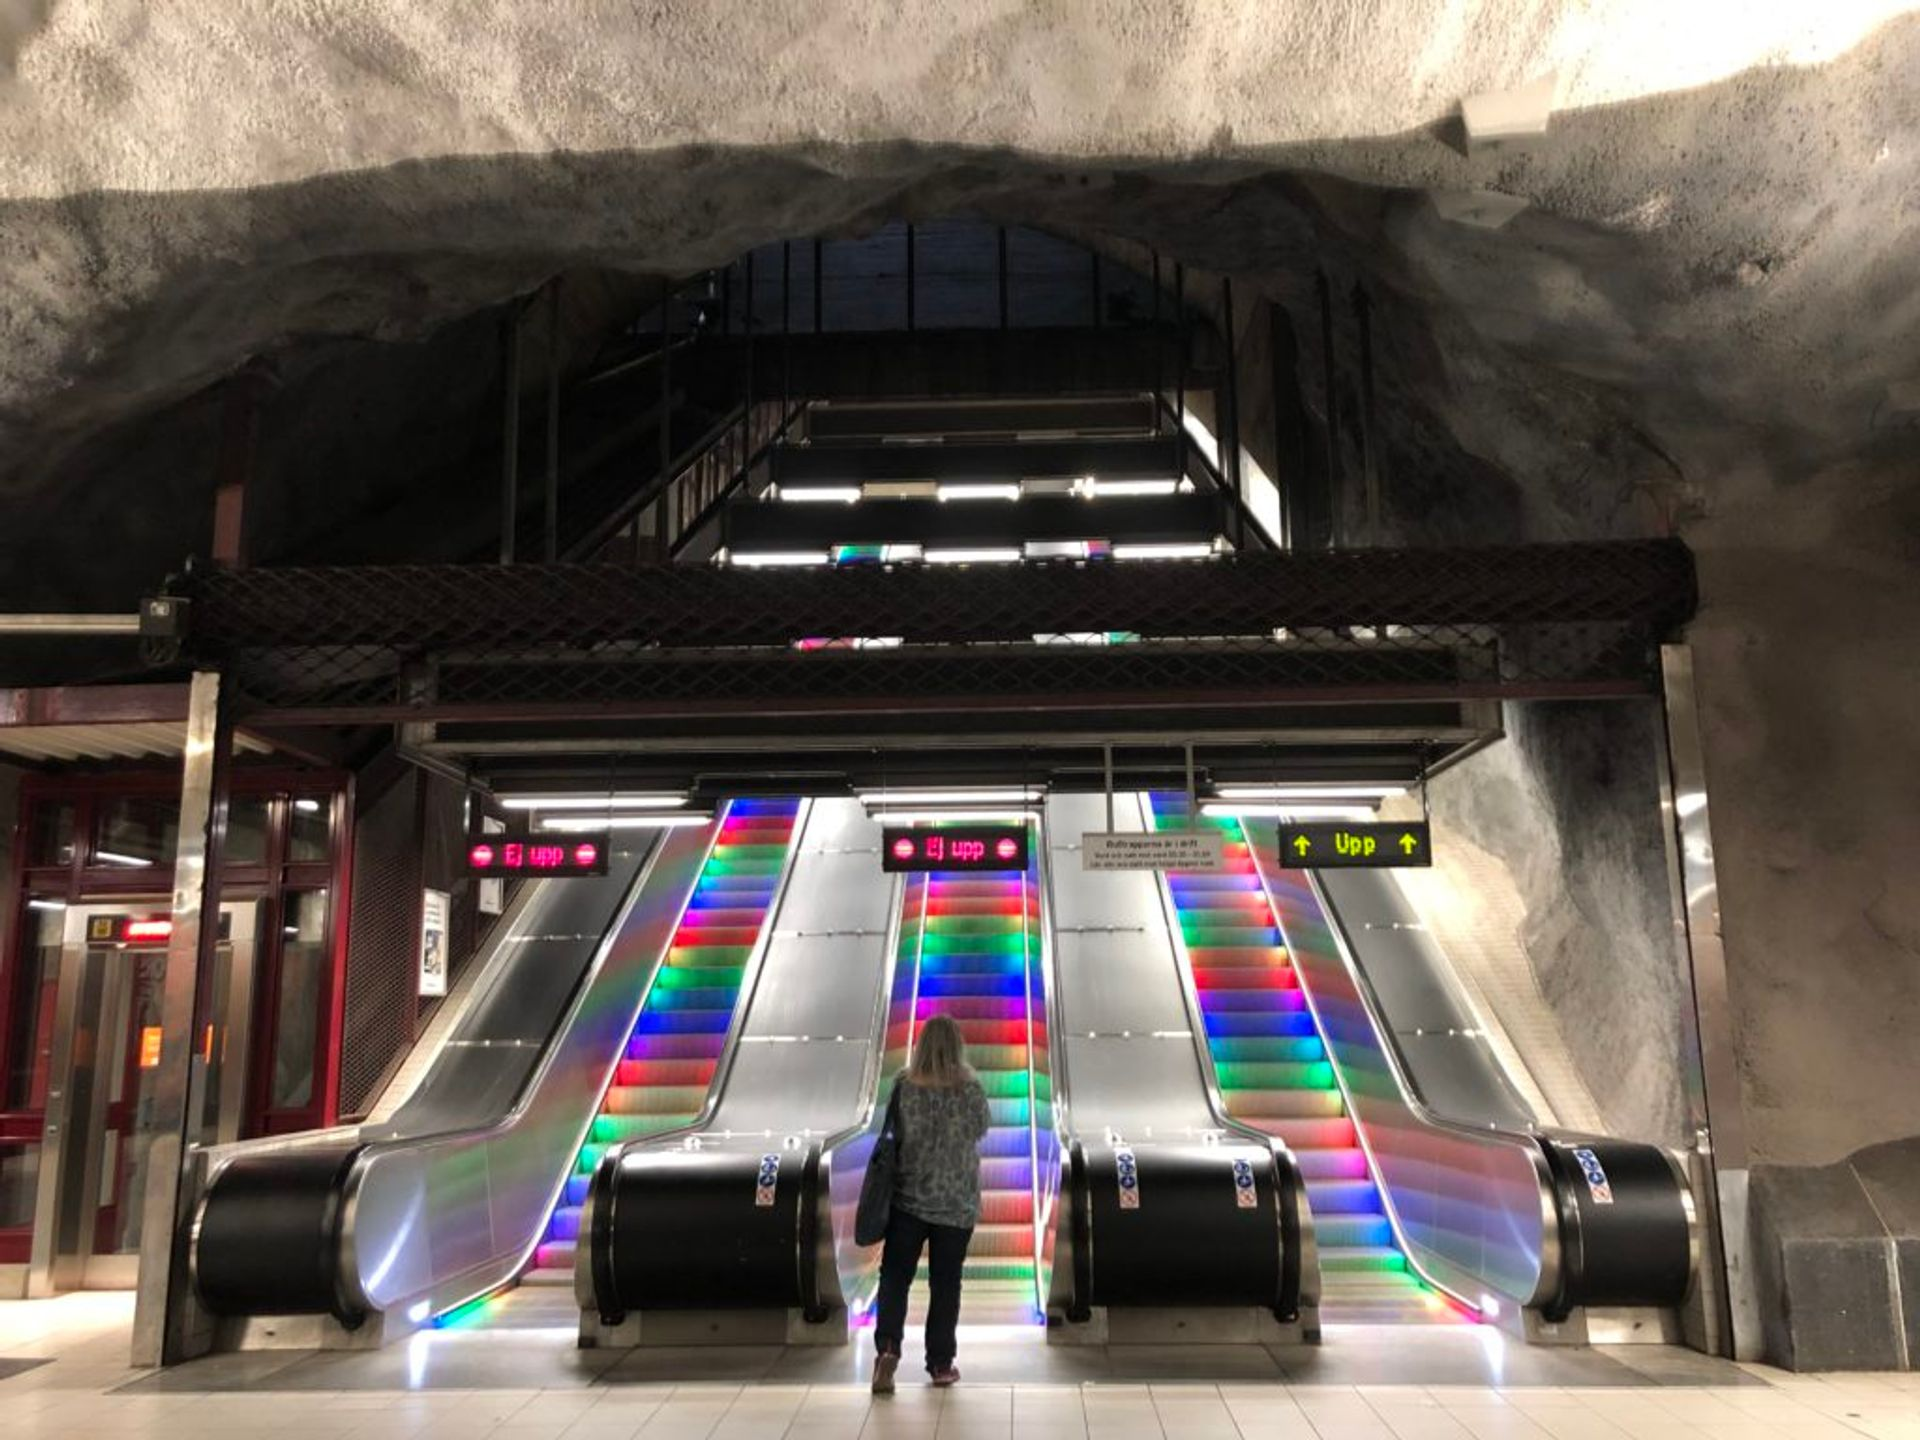 Three escalators in the Stockholm metro. The escalator steps are lit up in the colours of the rainbow.